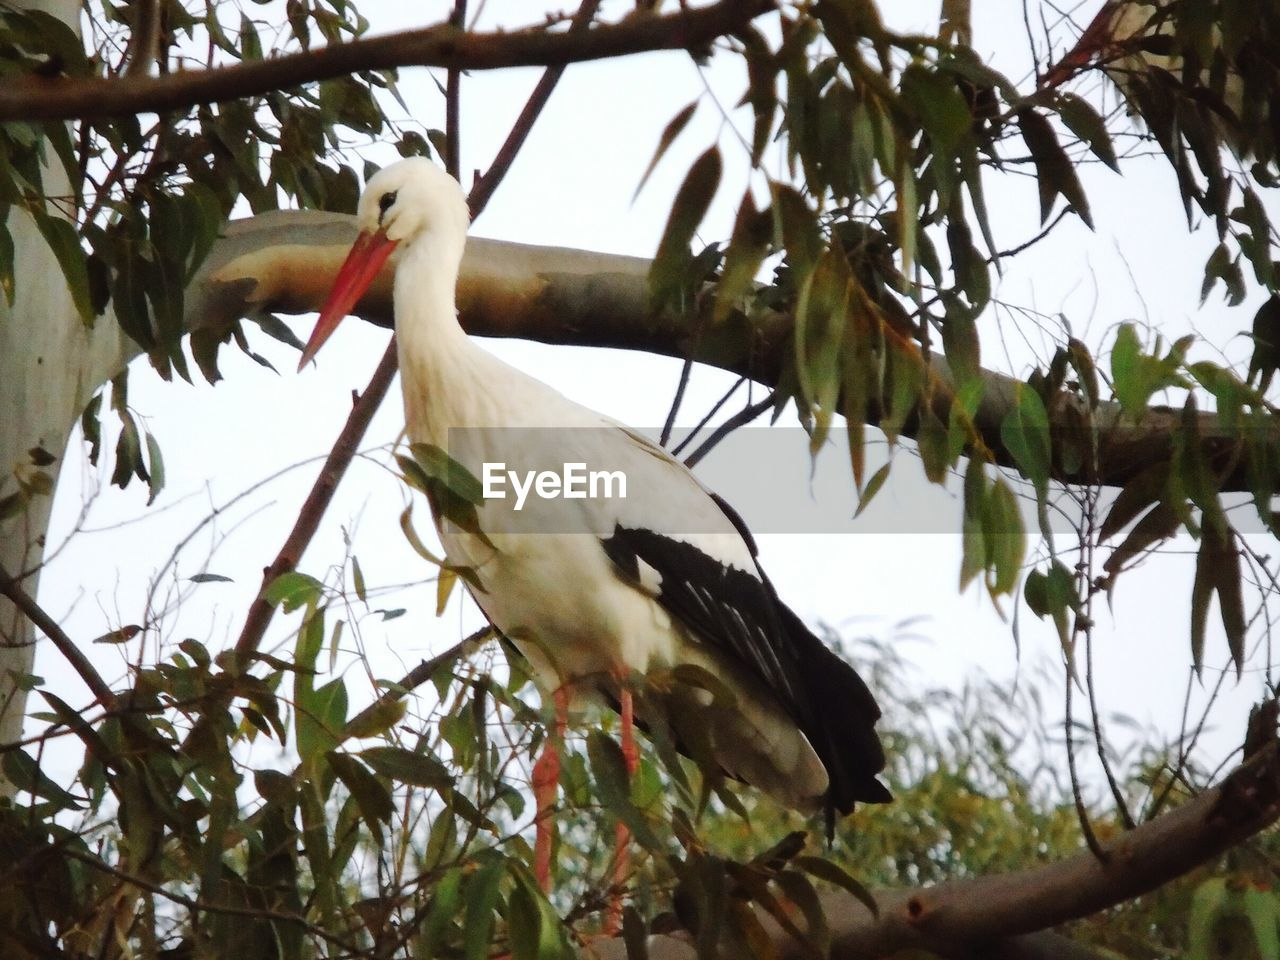 bird, tree, low angle view, animals in the wild, branch, animal themes, stork, animal wildlife, nature, one animal, beak, white stork, no people, perching, leaf, day, outdoors, beauty in nature, close-up, sky